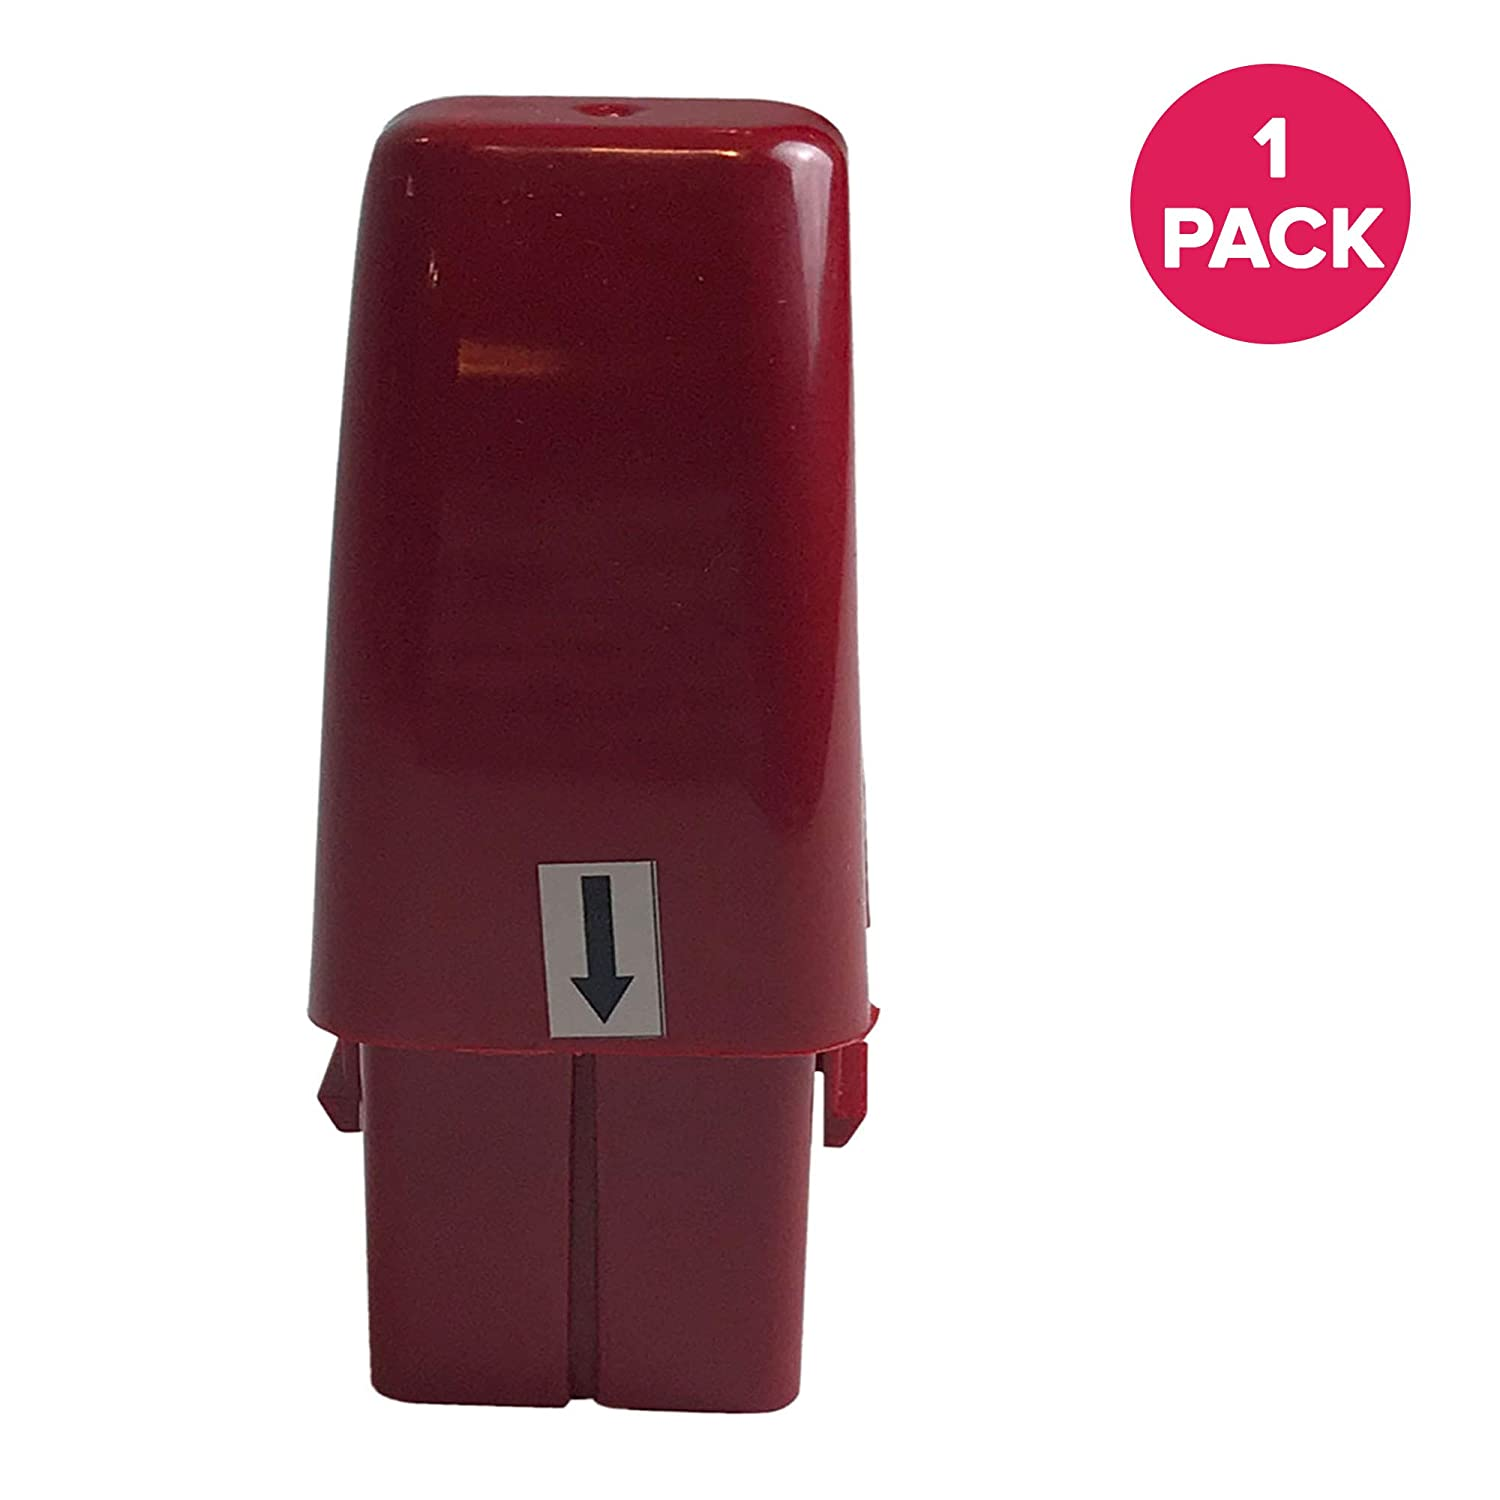 Think Crucial Replacement for Ontel Red 7.2V Ni-MH Battery Fits G1 & G2 Series Swivel Sweeper, Compatible with Part # RU-RBG, Long Lasting & Rechargeable